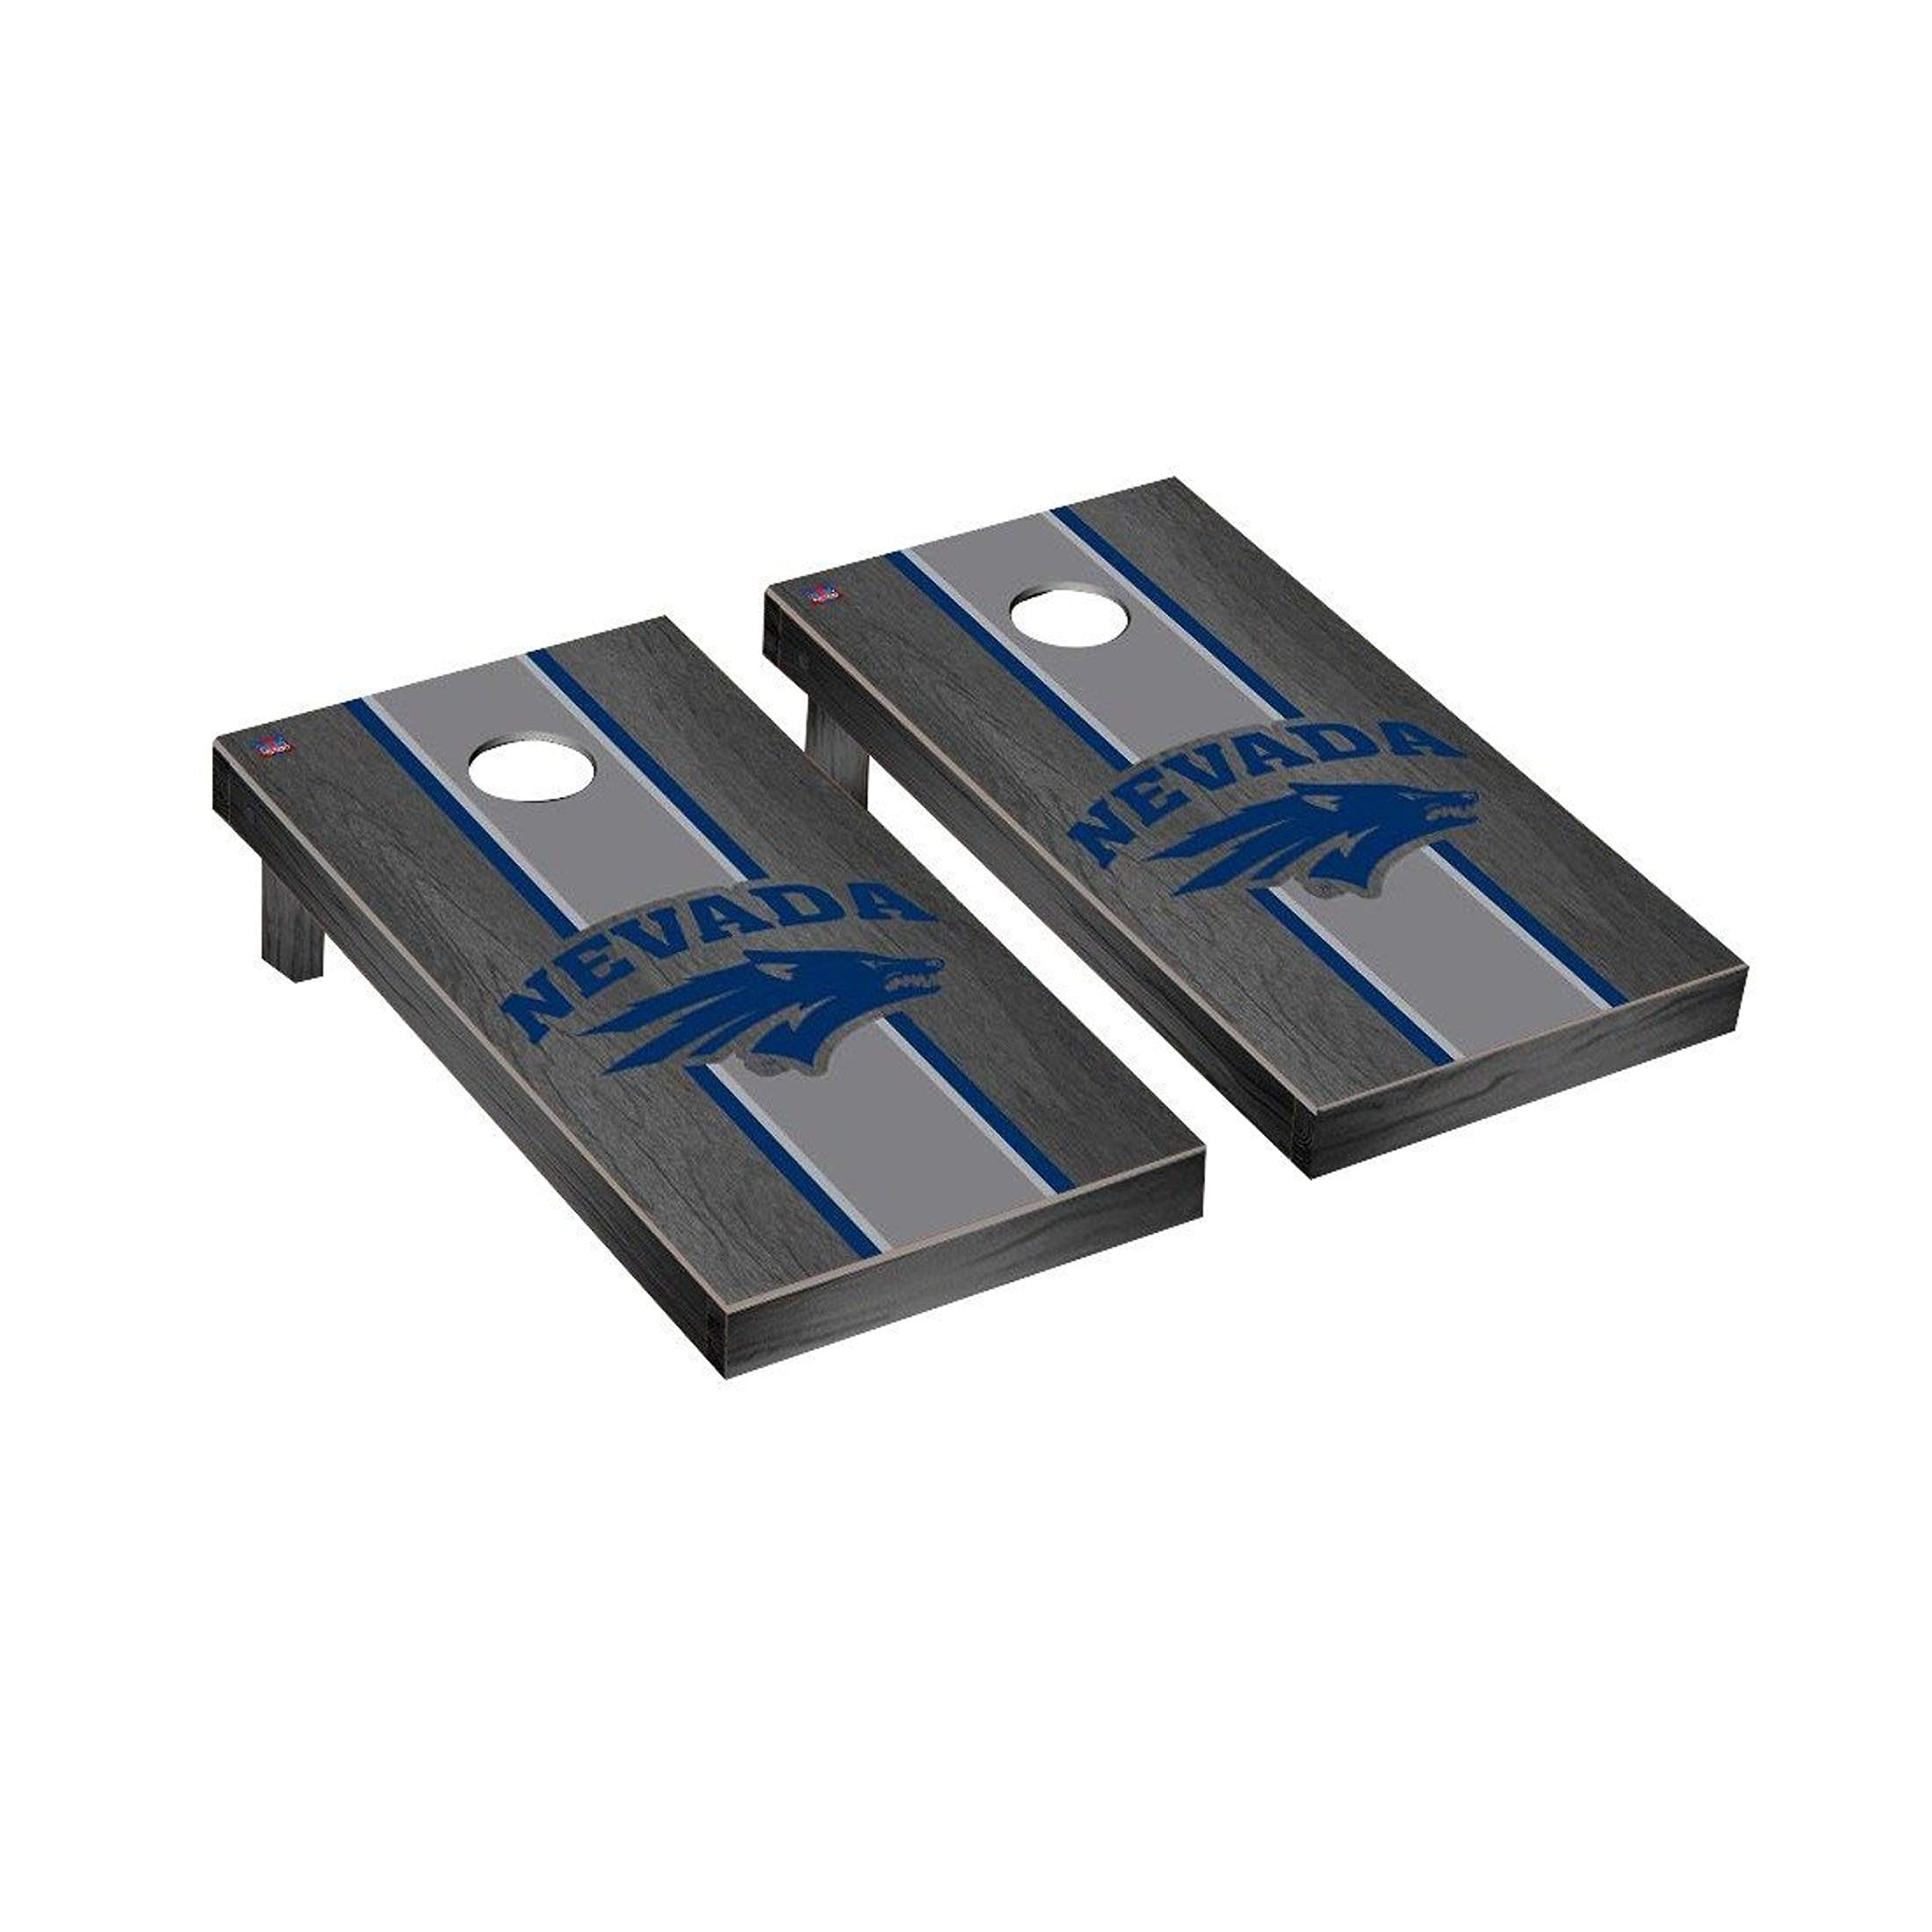 Victory Tailgate Regulation Collegiate NCAA Onyx Stained Stripe Series Cornhole Board Set - 2 Boards, 8 Bags - University of Nevada Reno Wolf Pack by Victory Tailgate